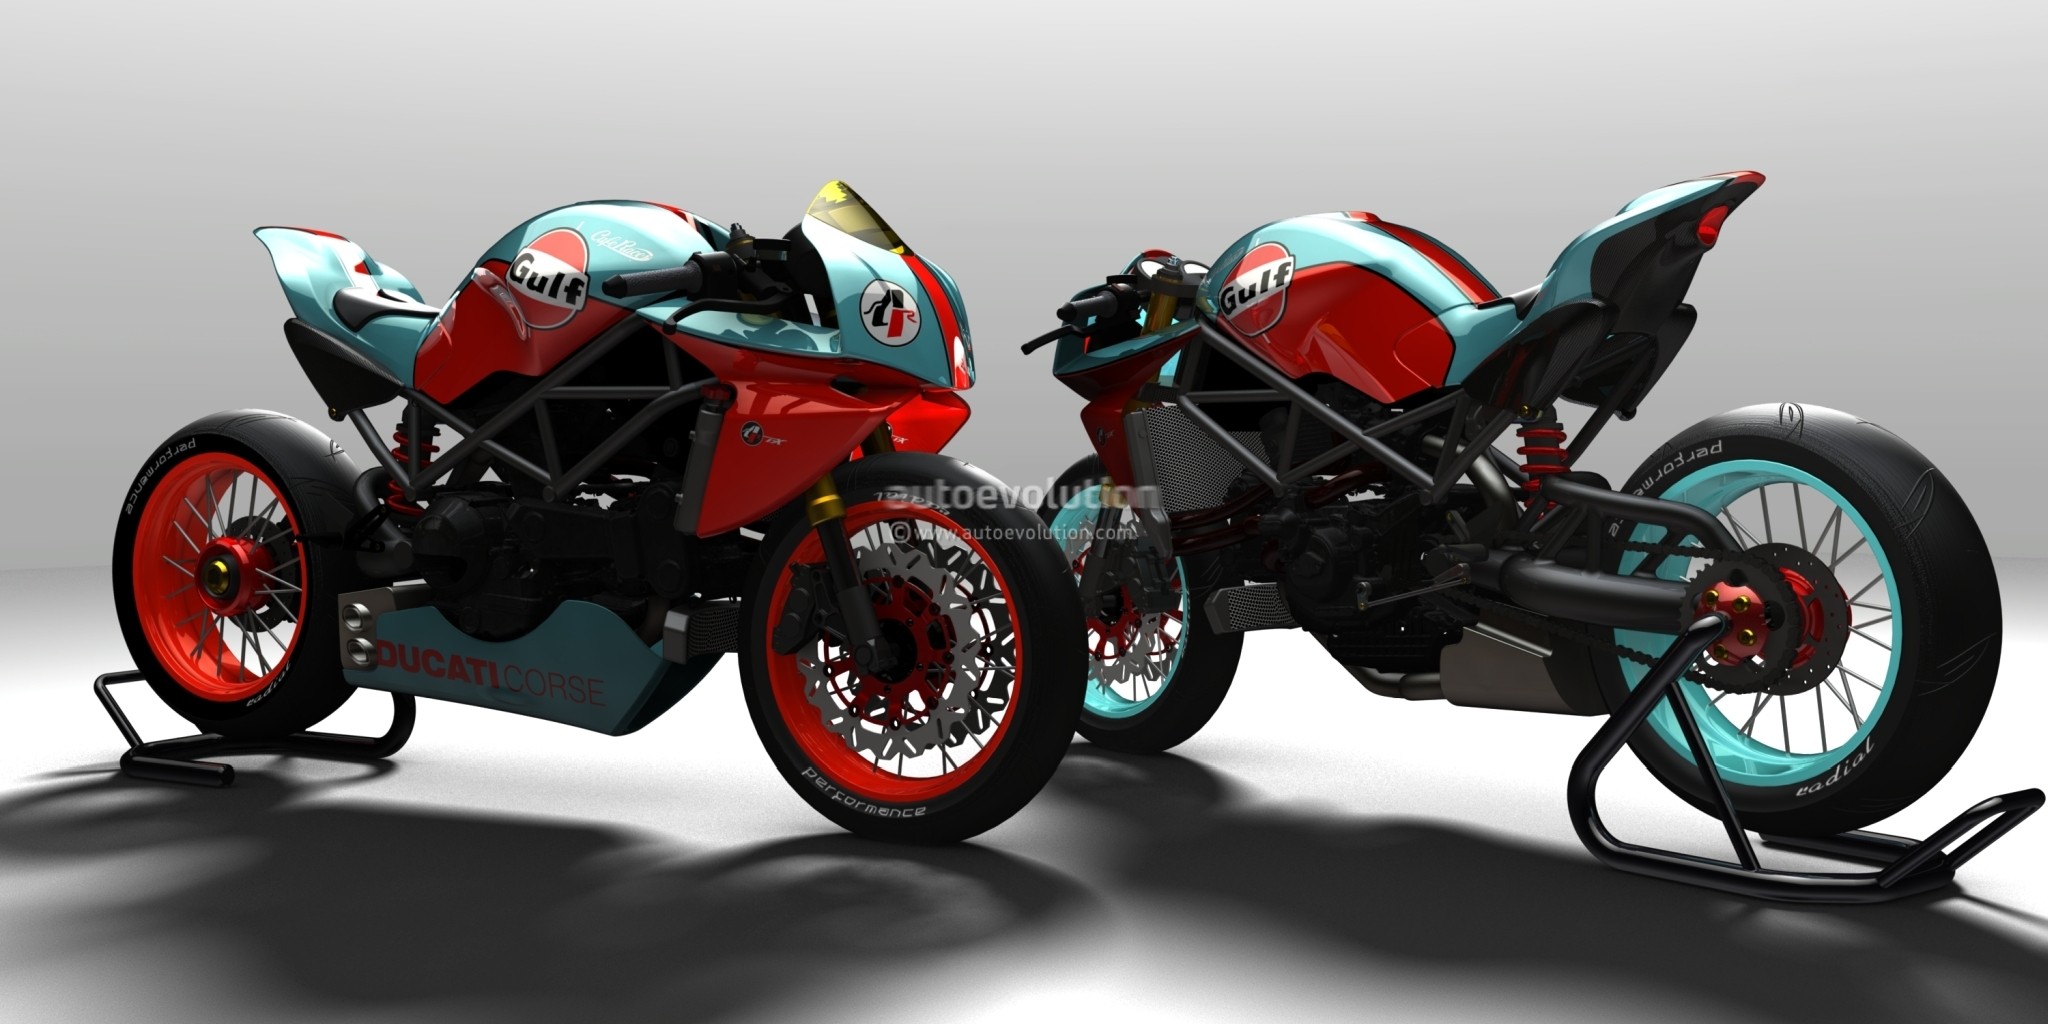 Fine Line Auto Body >> Jaw-Dropping Paolo Tesio Ducati Body Kits Available in 2014 - autoevolution